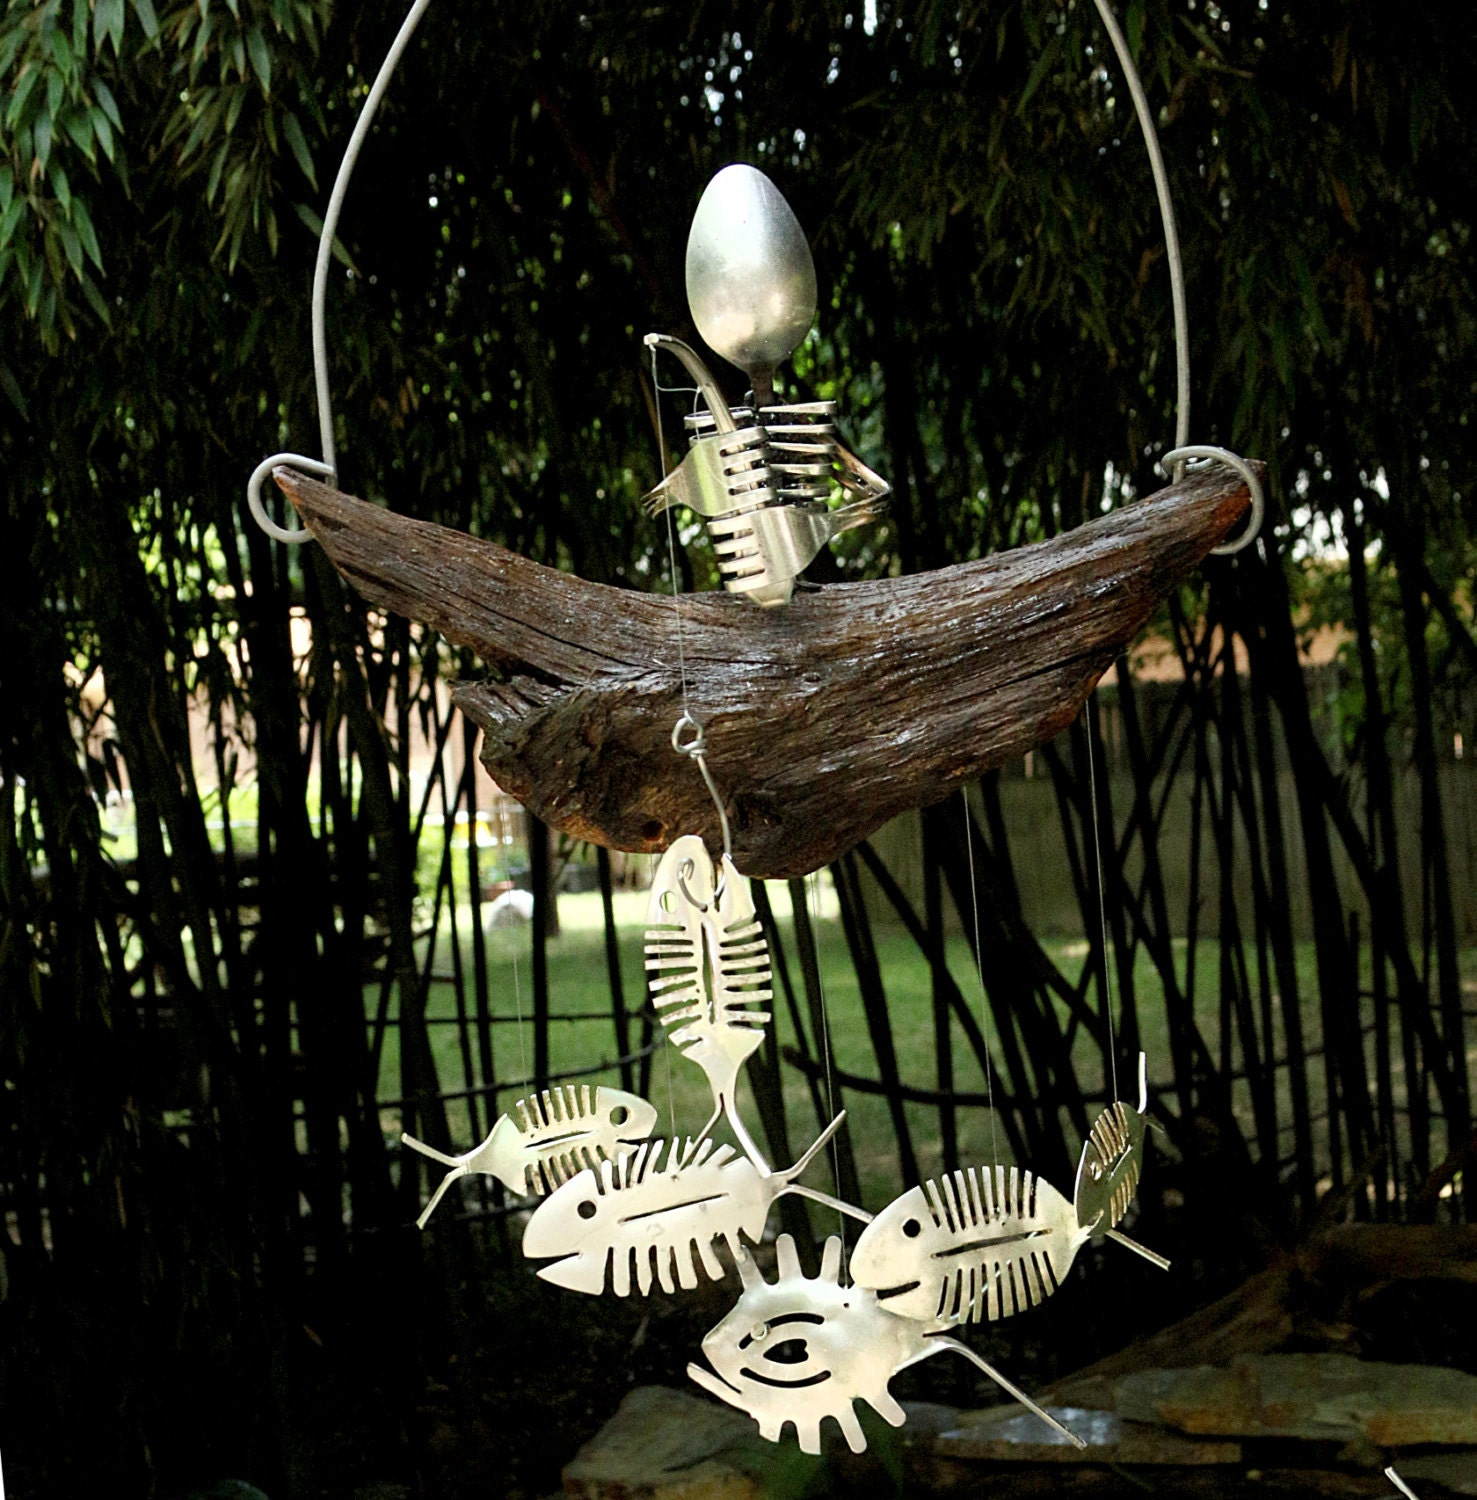 Steam Punk Spoon Skeleton, Bone Fish Chime, Model Figurine, Anatomy ...